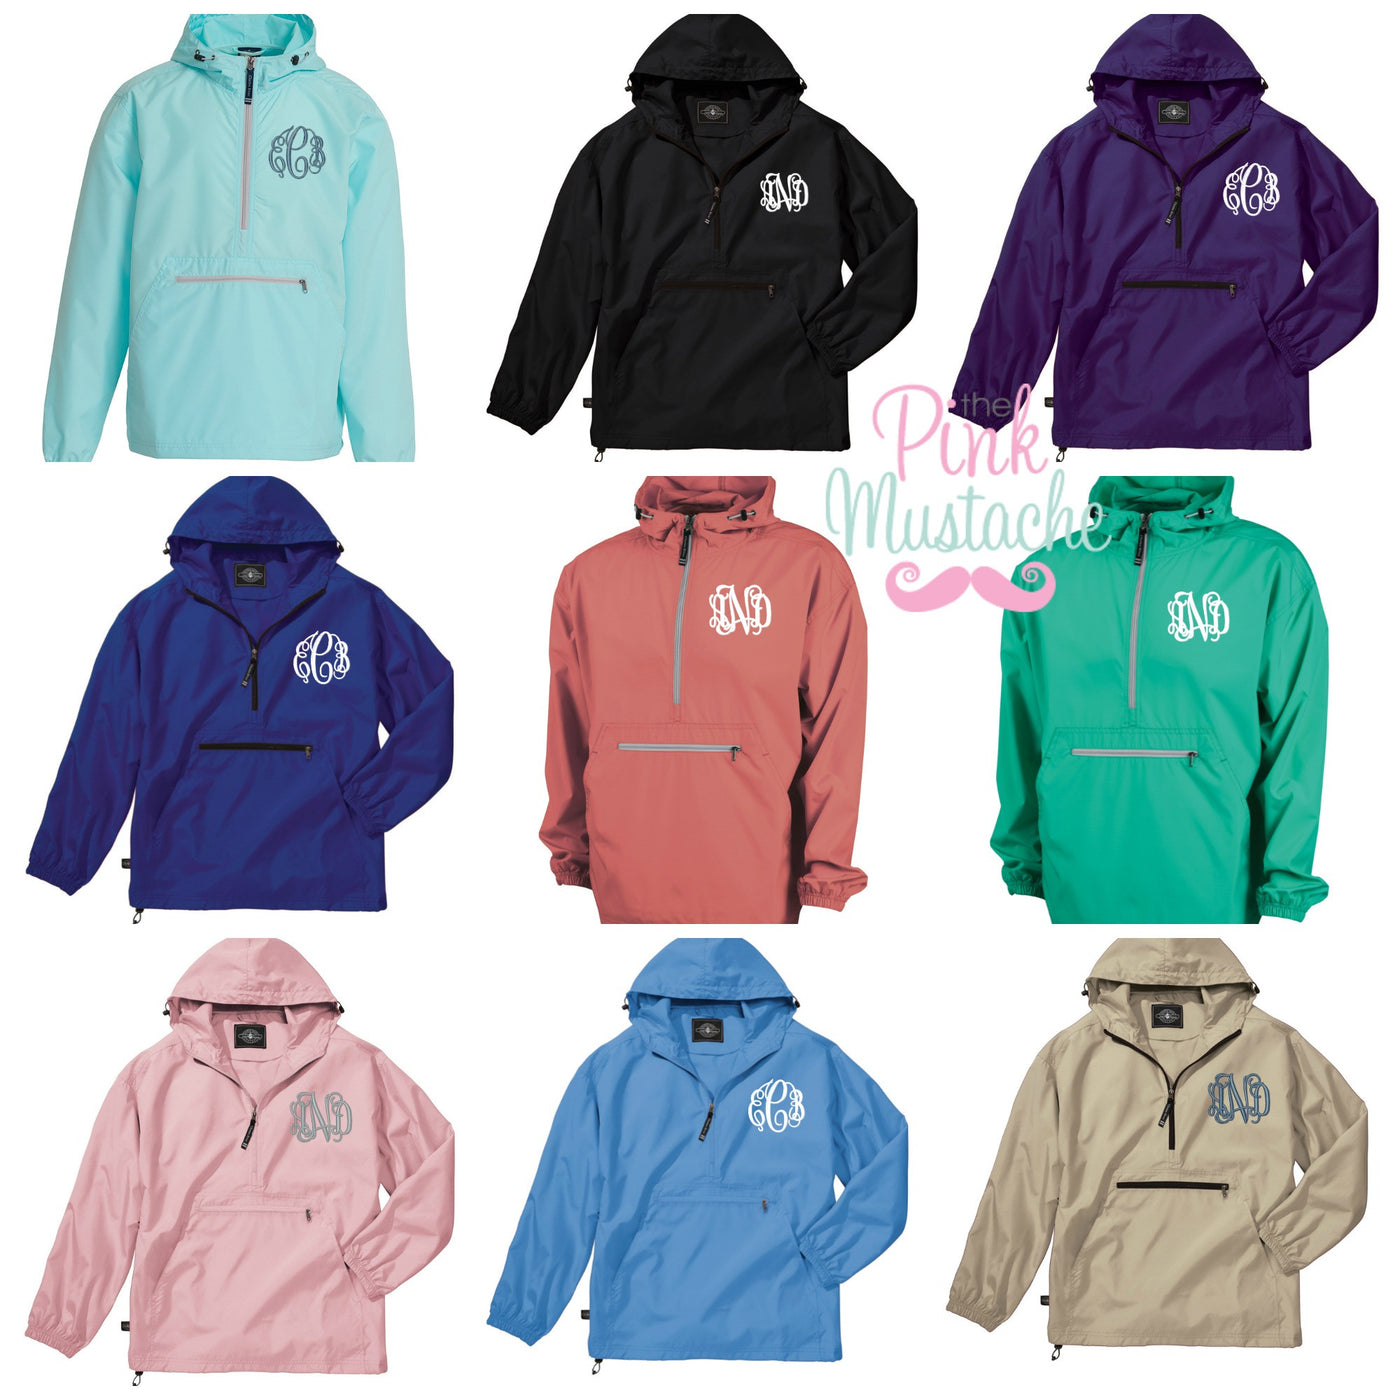 dirt cheap 2019 hot sale search for original SALE Charles River Monogrammed Rain Jacket / Windbreaker / Pack and Go  Pullover